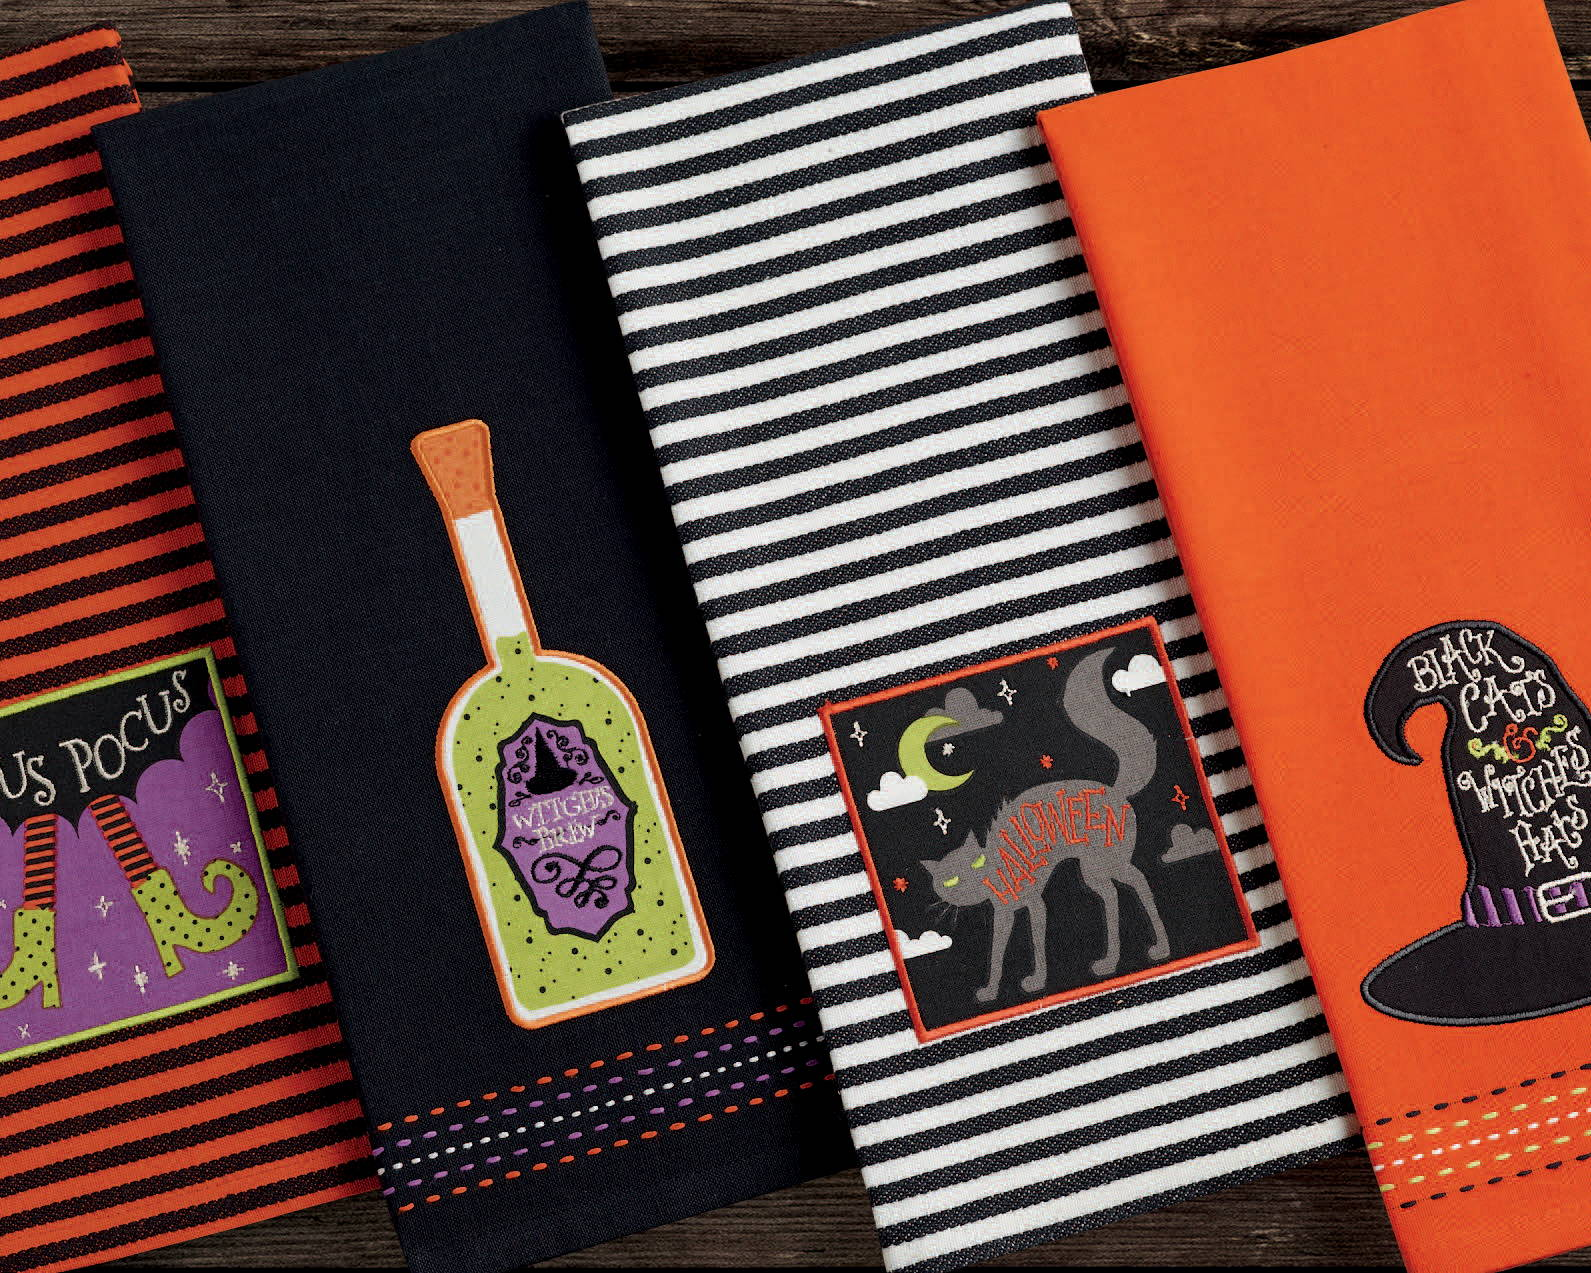 wholesale halloween gifts for boutiques